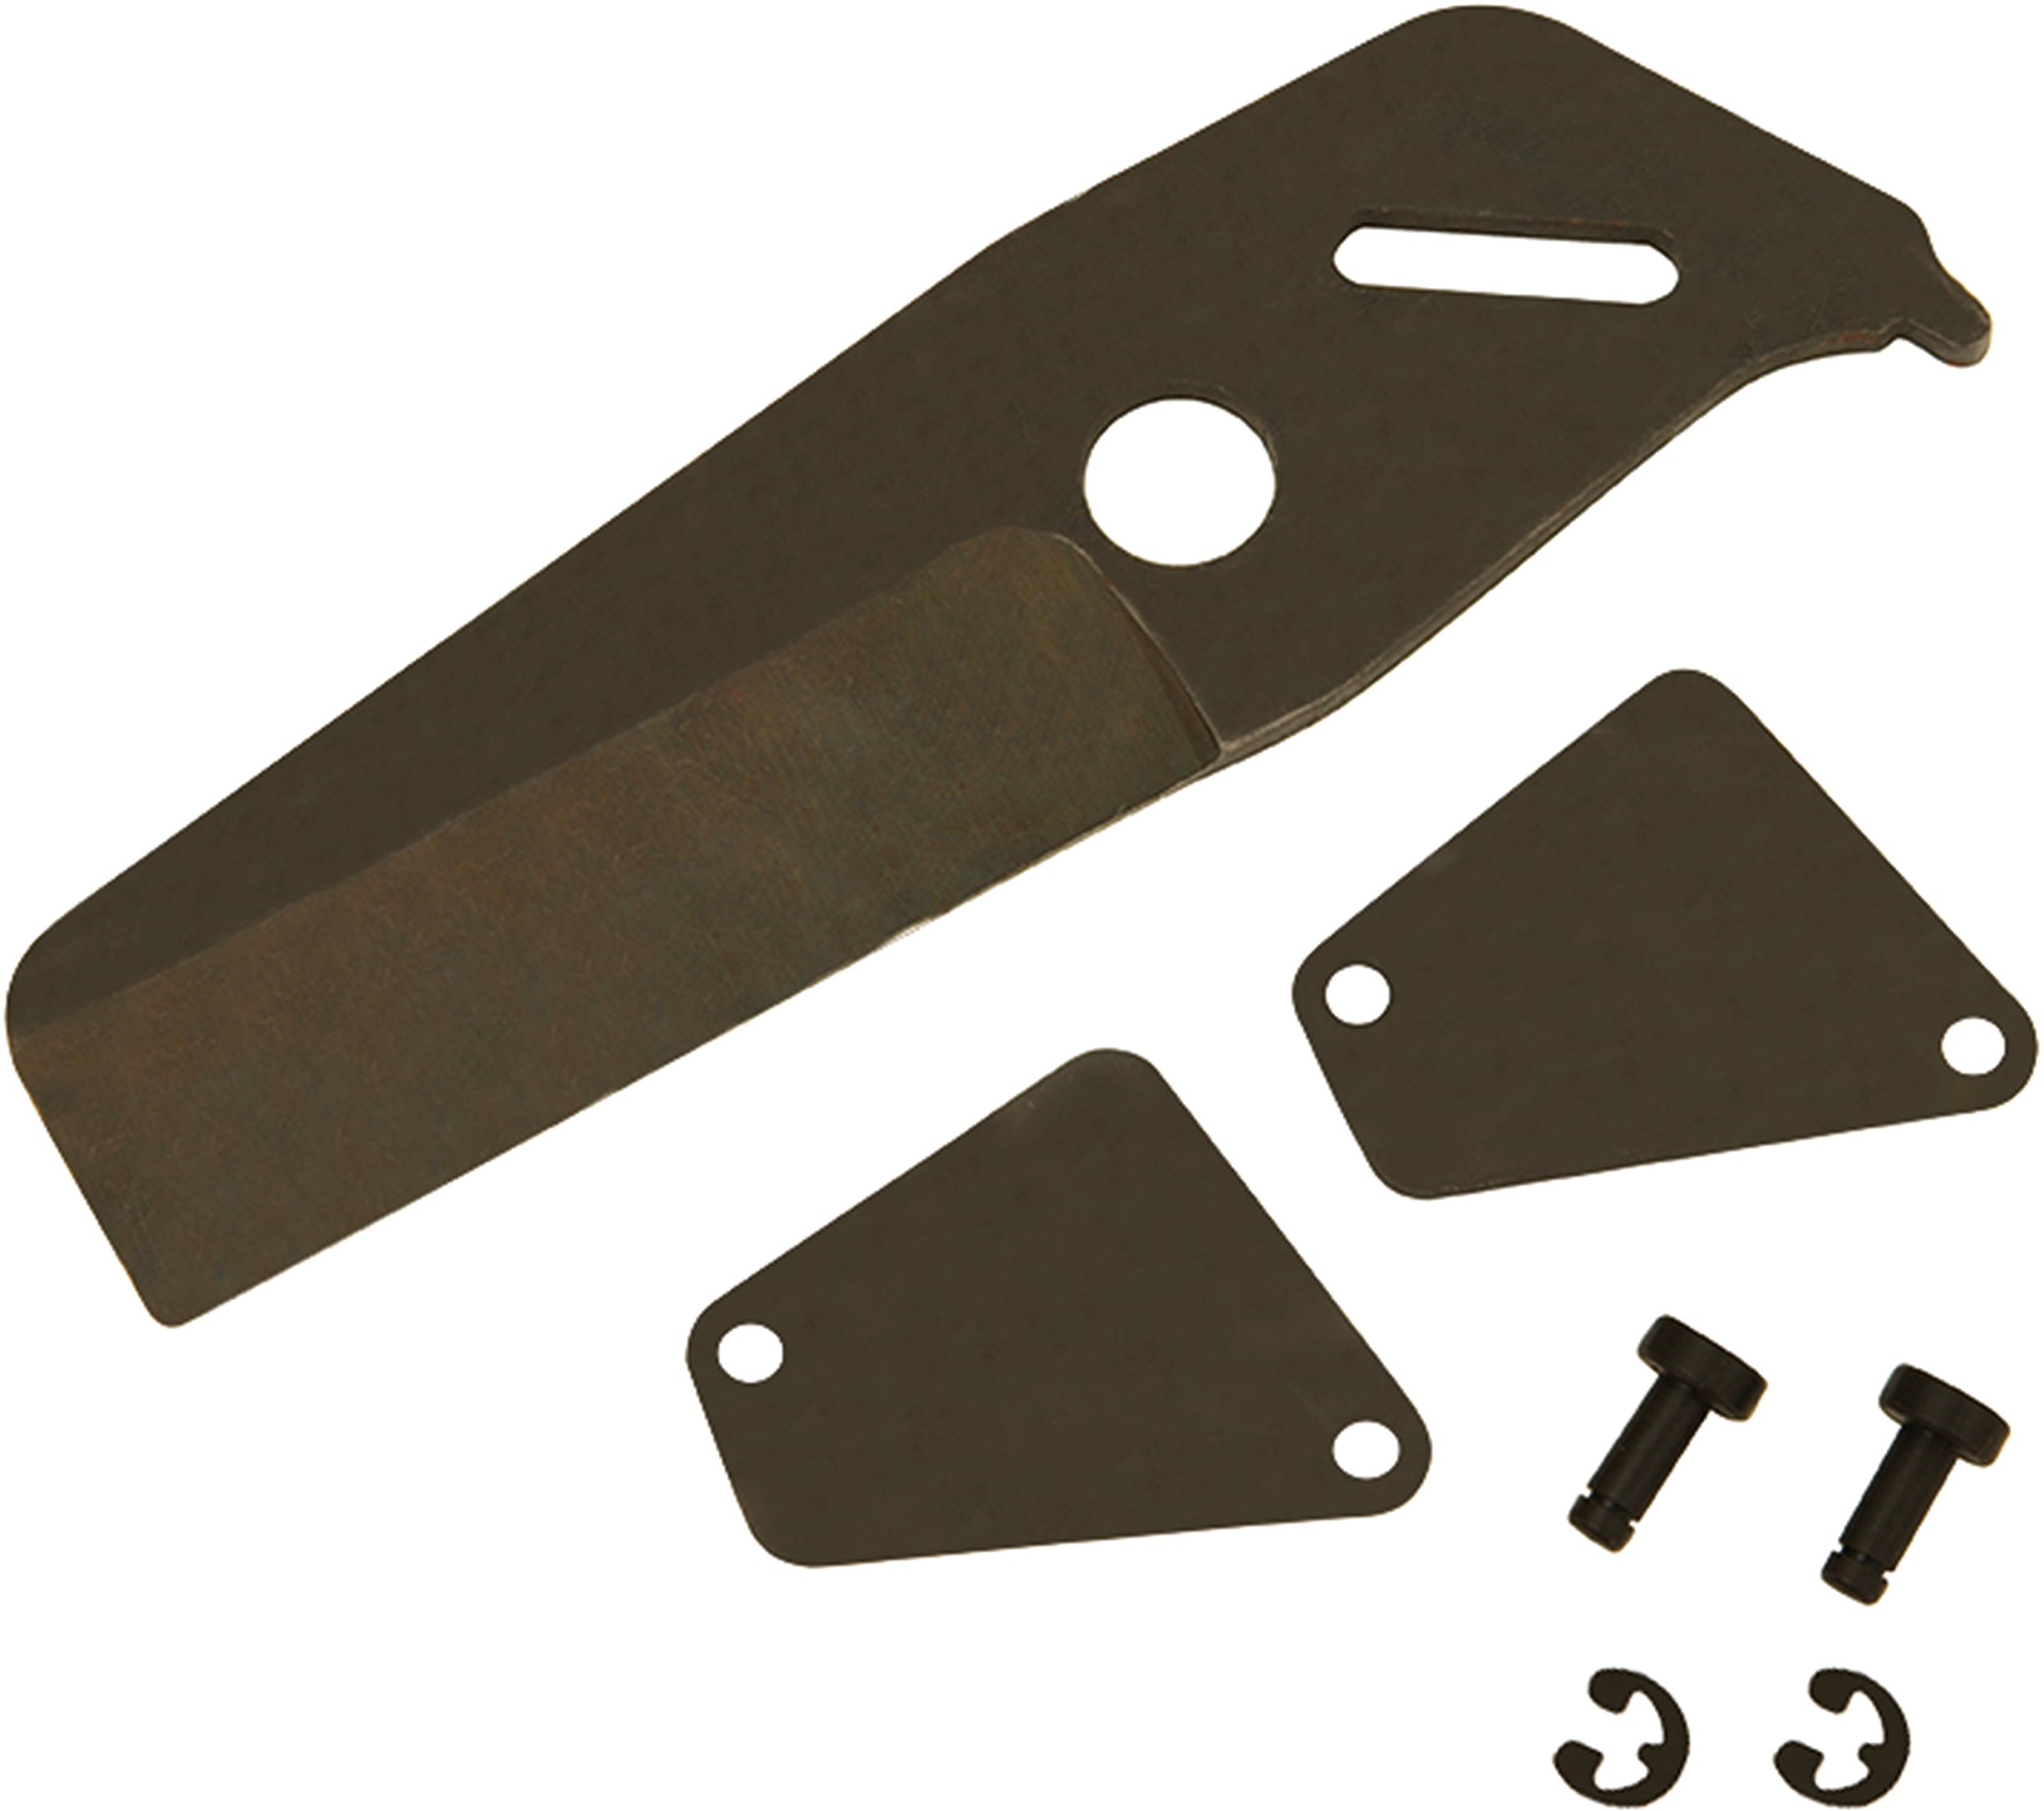 Reed Tool RS1B Clean Room Ratchet Shear Replacement Blade